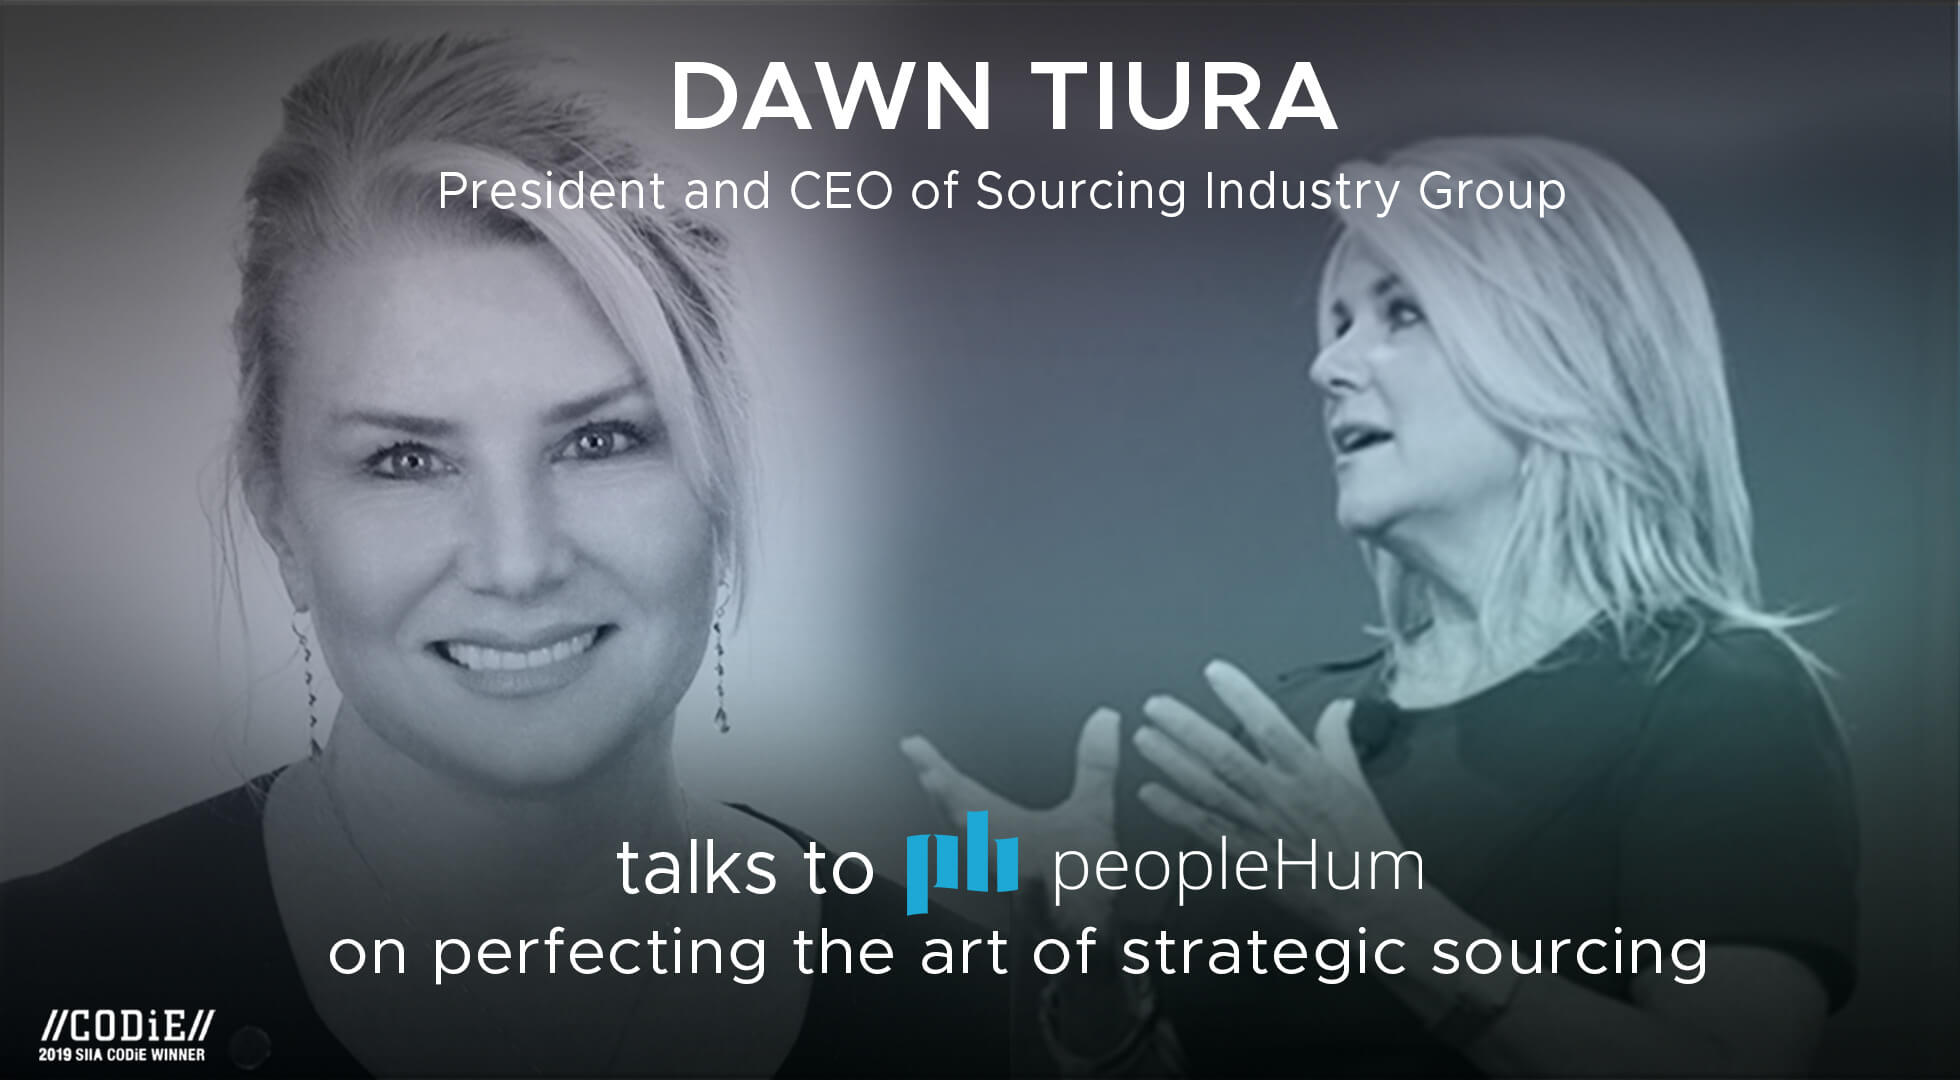 Perfecting the art of strategic sourcing - Dawn Tiura [Interview]